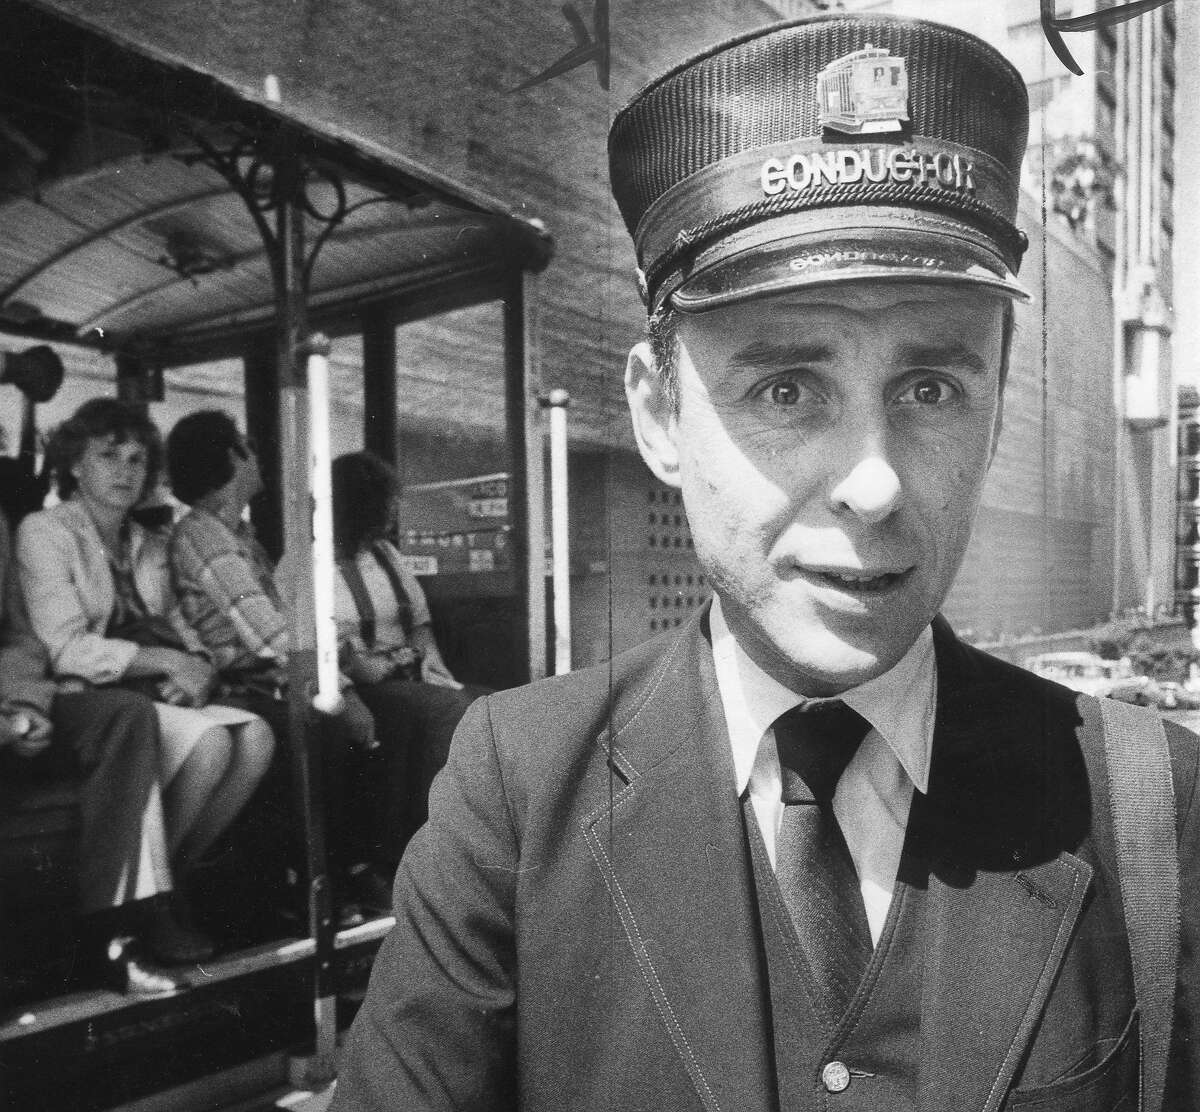 Muni Cable Car conductor Richard Morley, pictured on Sept. 14, 1982. Morley got in hot water with Muni for breaking the rules and making his own vintage uniform.